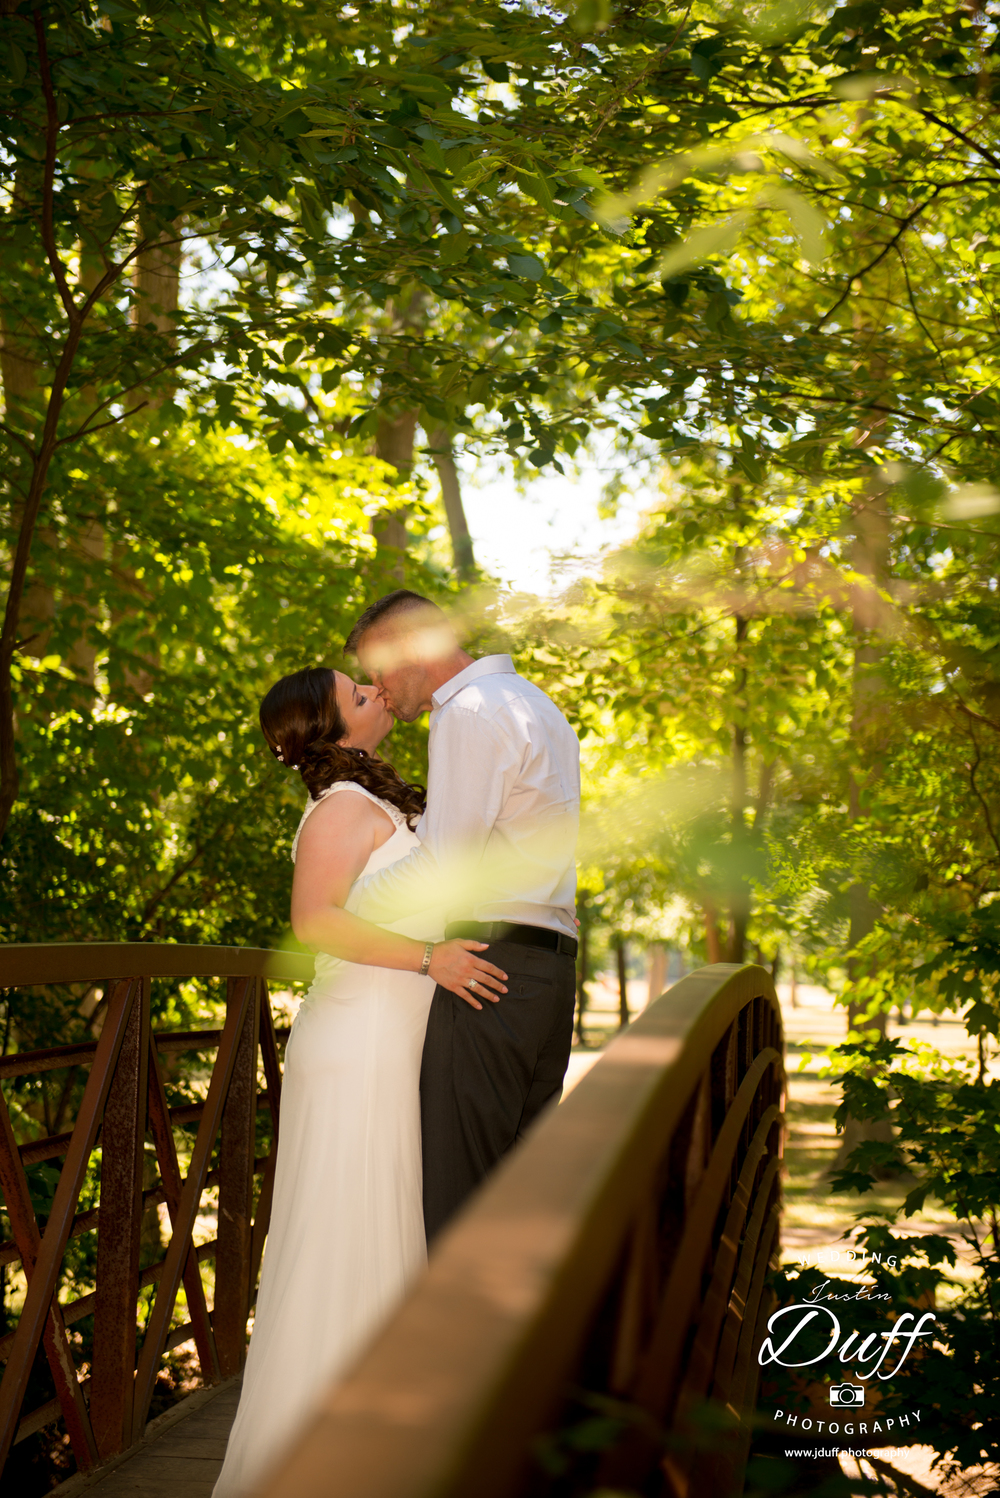 Firefighter Park Wedding - Troy MI wedding photographer. bride and groom kissing on a bridge voyeur.